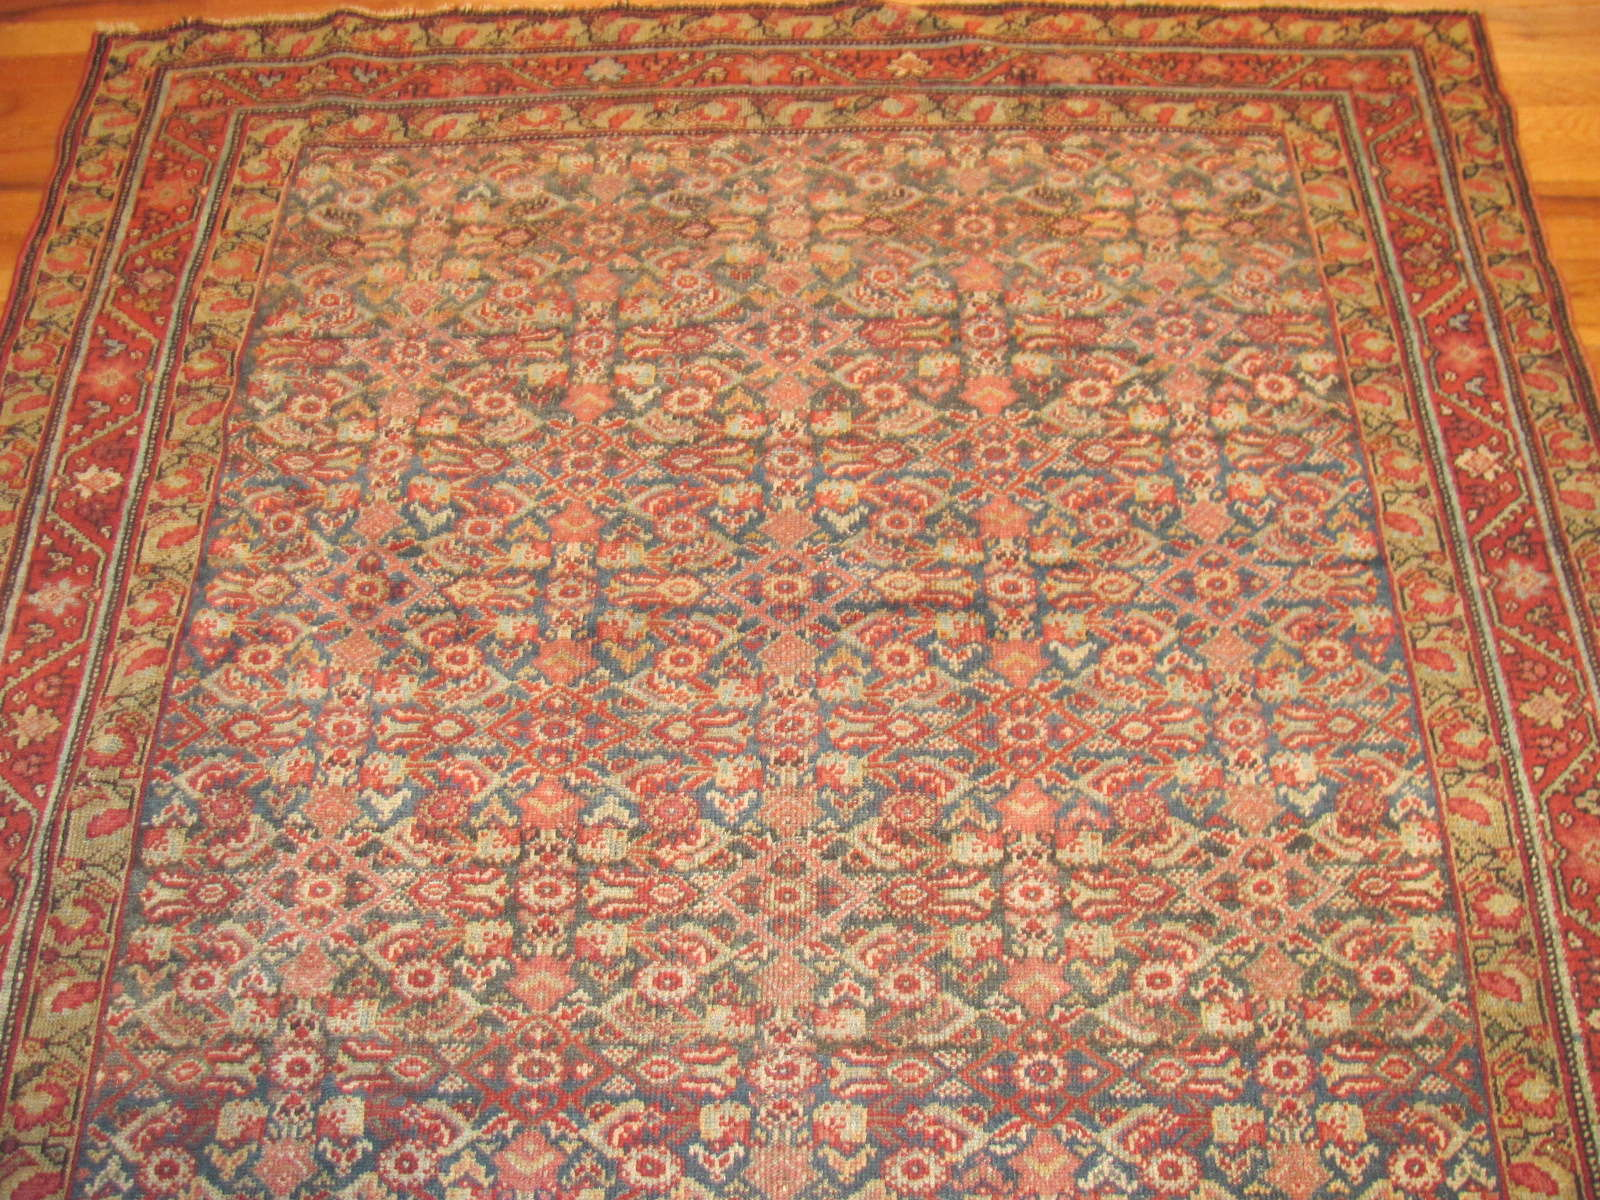 24459 antique Persian Malayer rug 5,4x9,9 -1